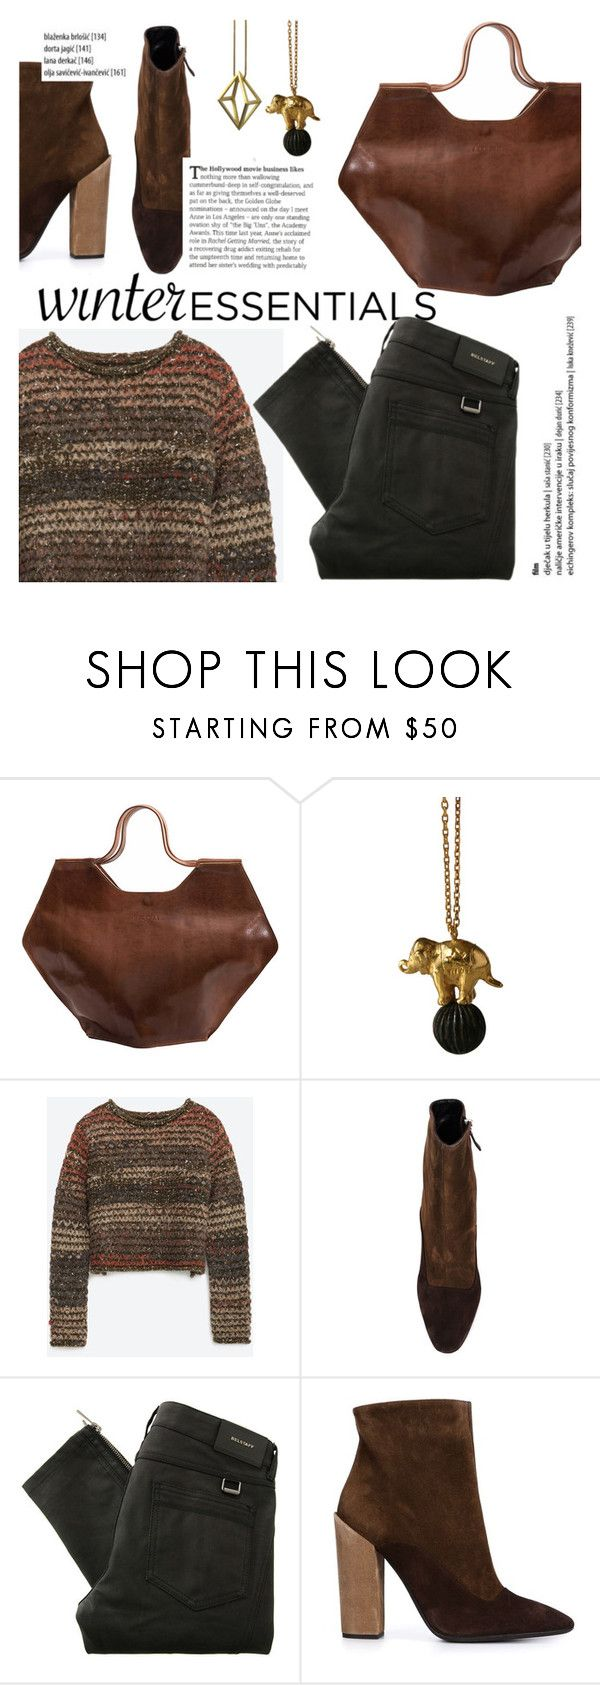 """""""winter essentials"""" by thepommier ❤ liked on Polyvore featuring Zara, Giambattista Valli, Belstaff and Stephanie Bates"""